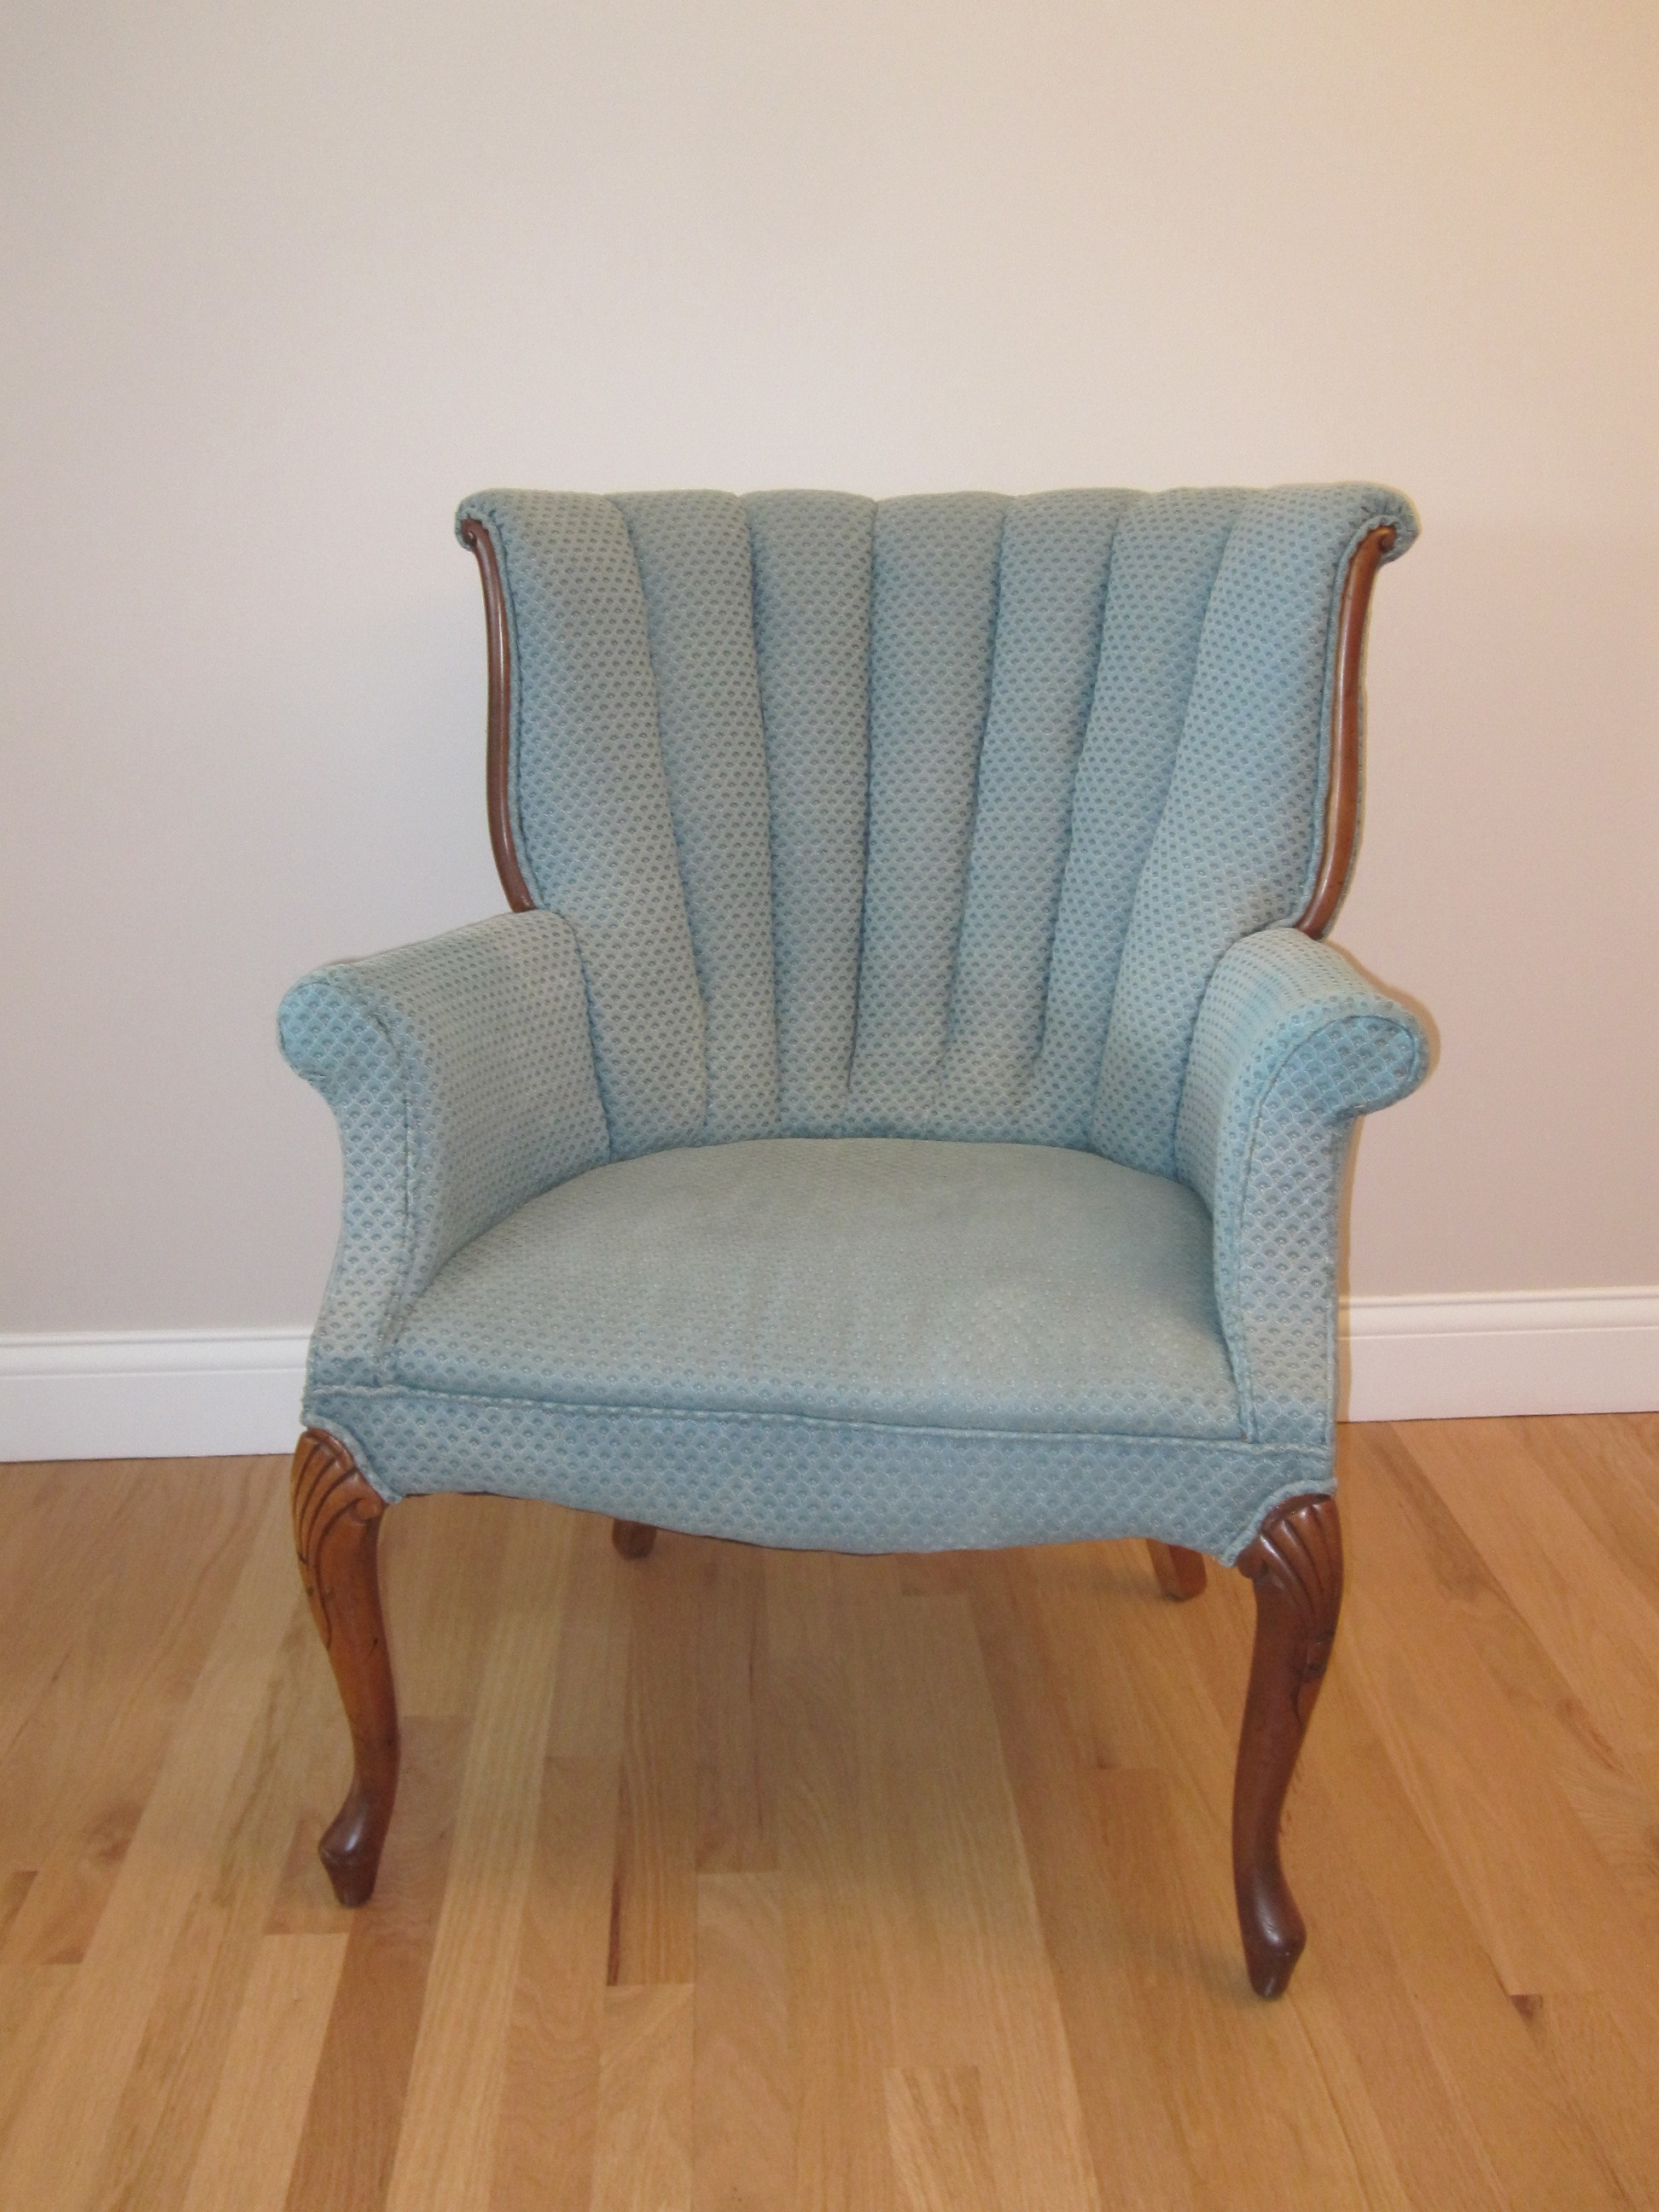 Hazel Chairs - Description ~ pair of blue upholstered chairs; Mr & Mrs seats for head tableQuantity ~ 2Rental Price ~ $20